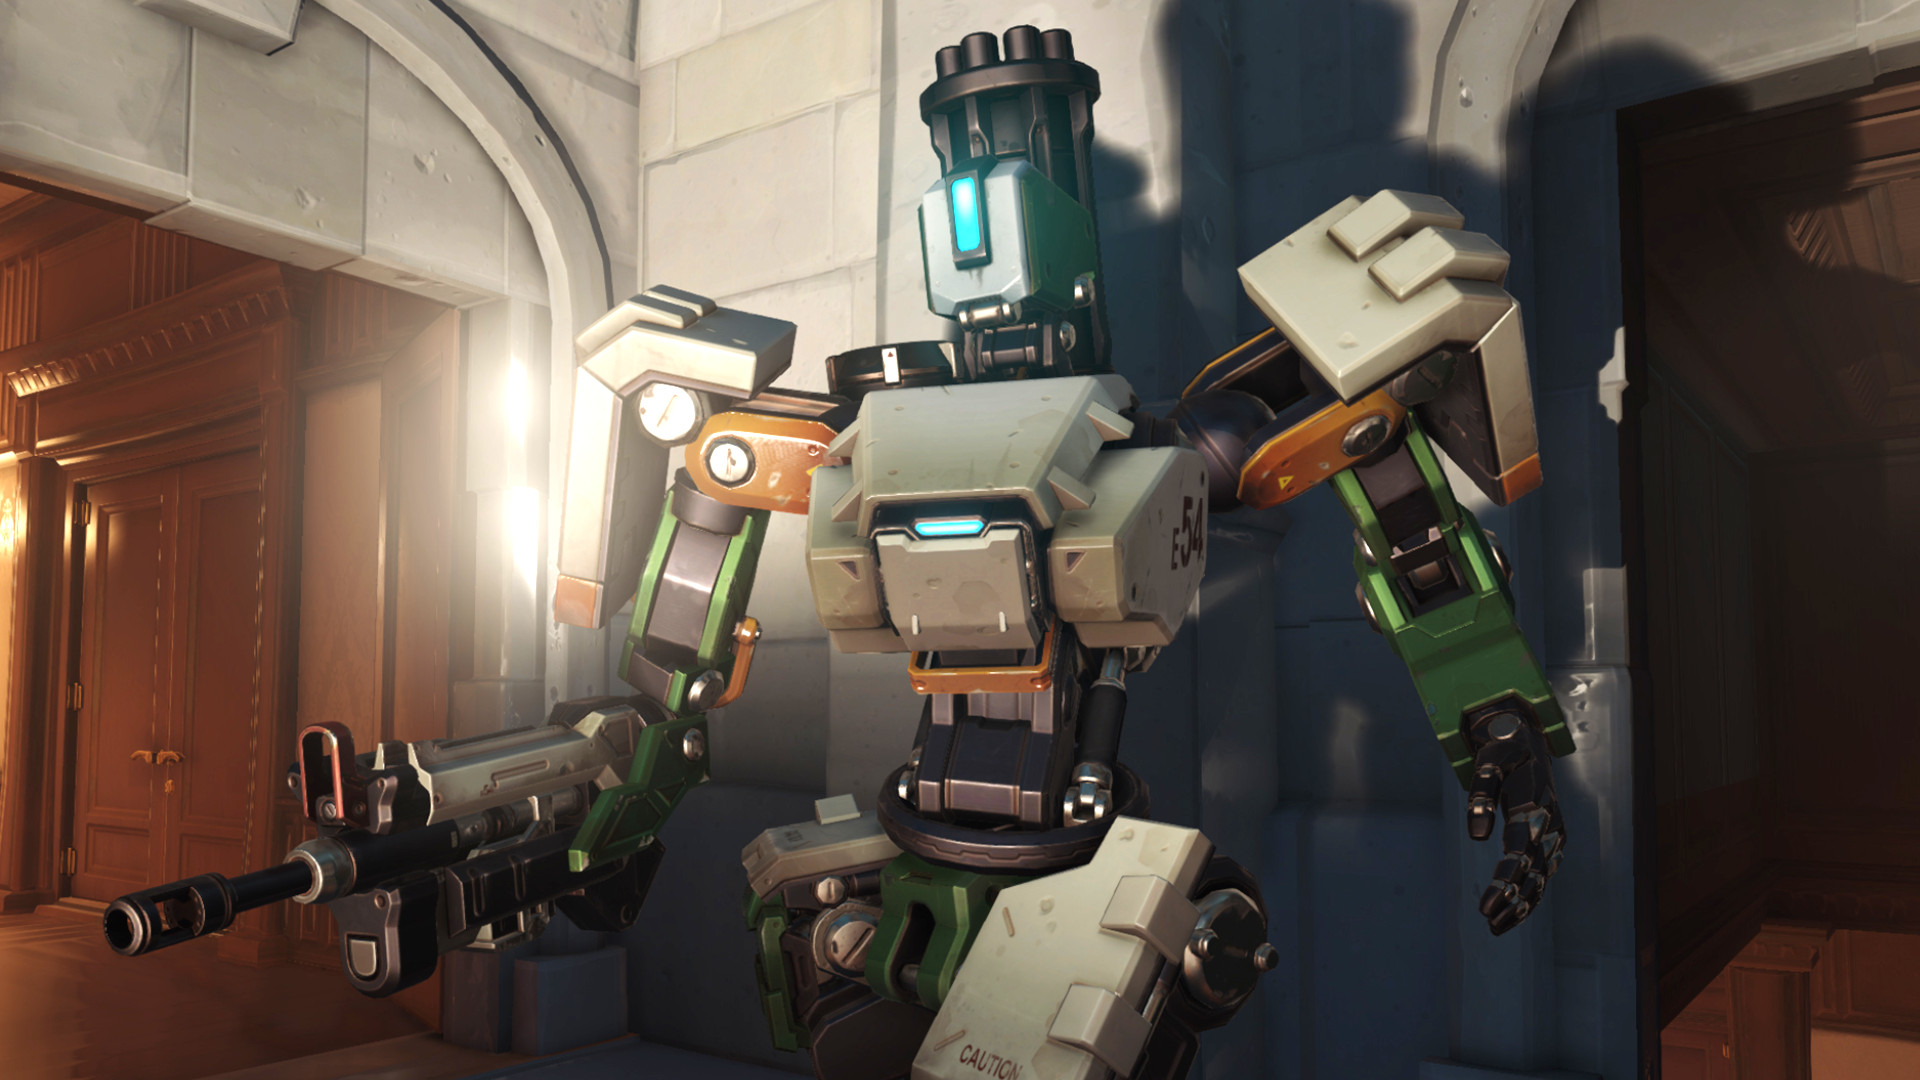 Overwatch 2's Bastion rework could make him more mobile in sentry mode |  PCGamesN